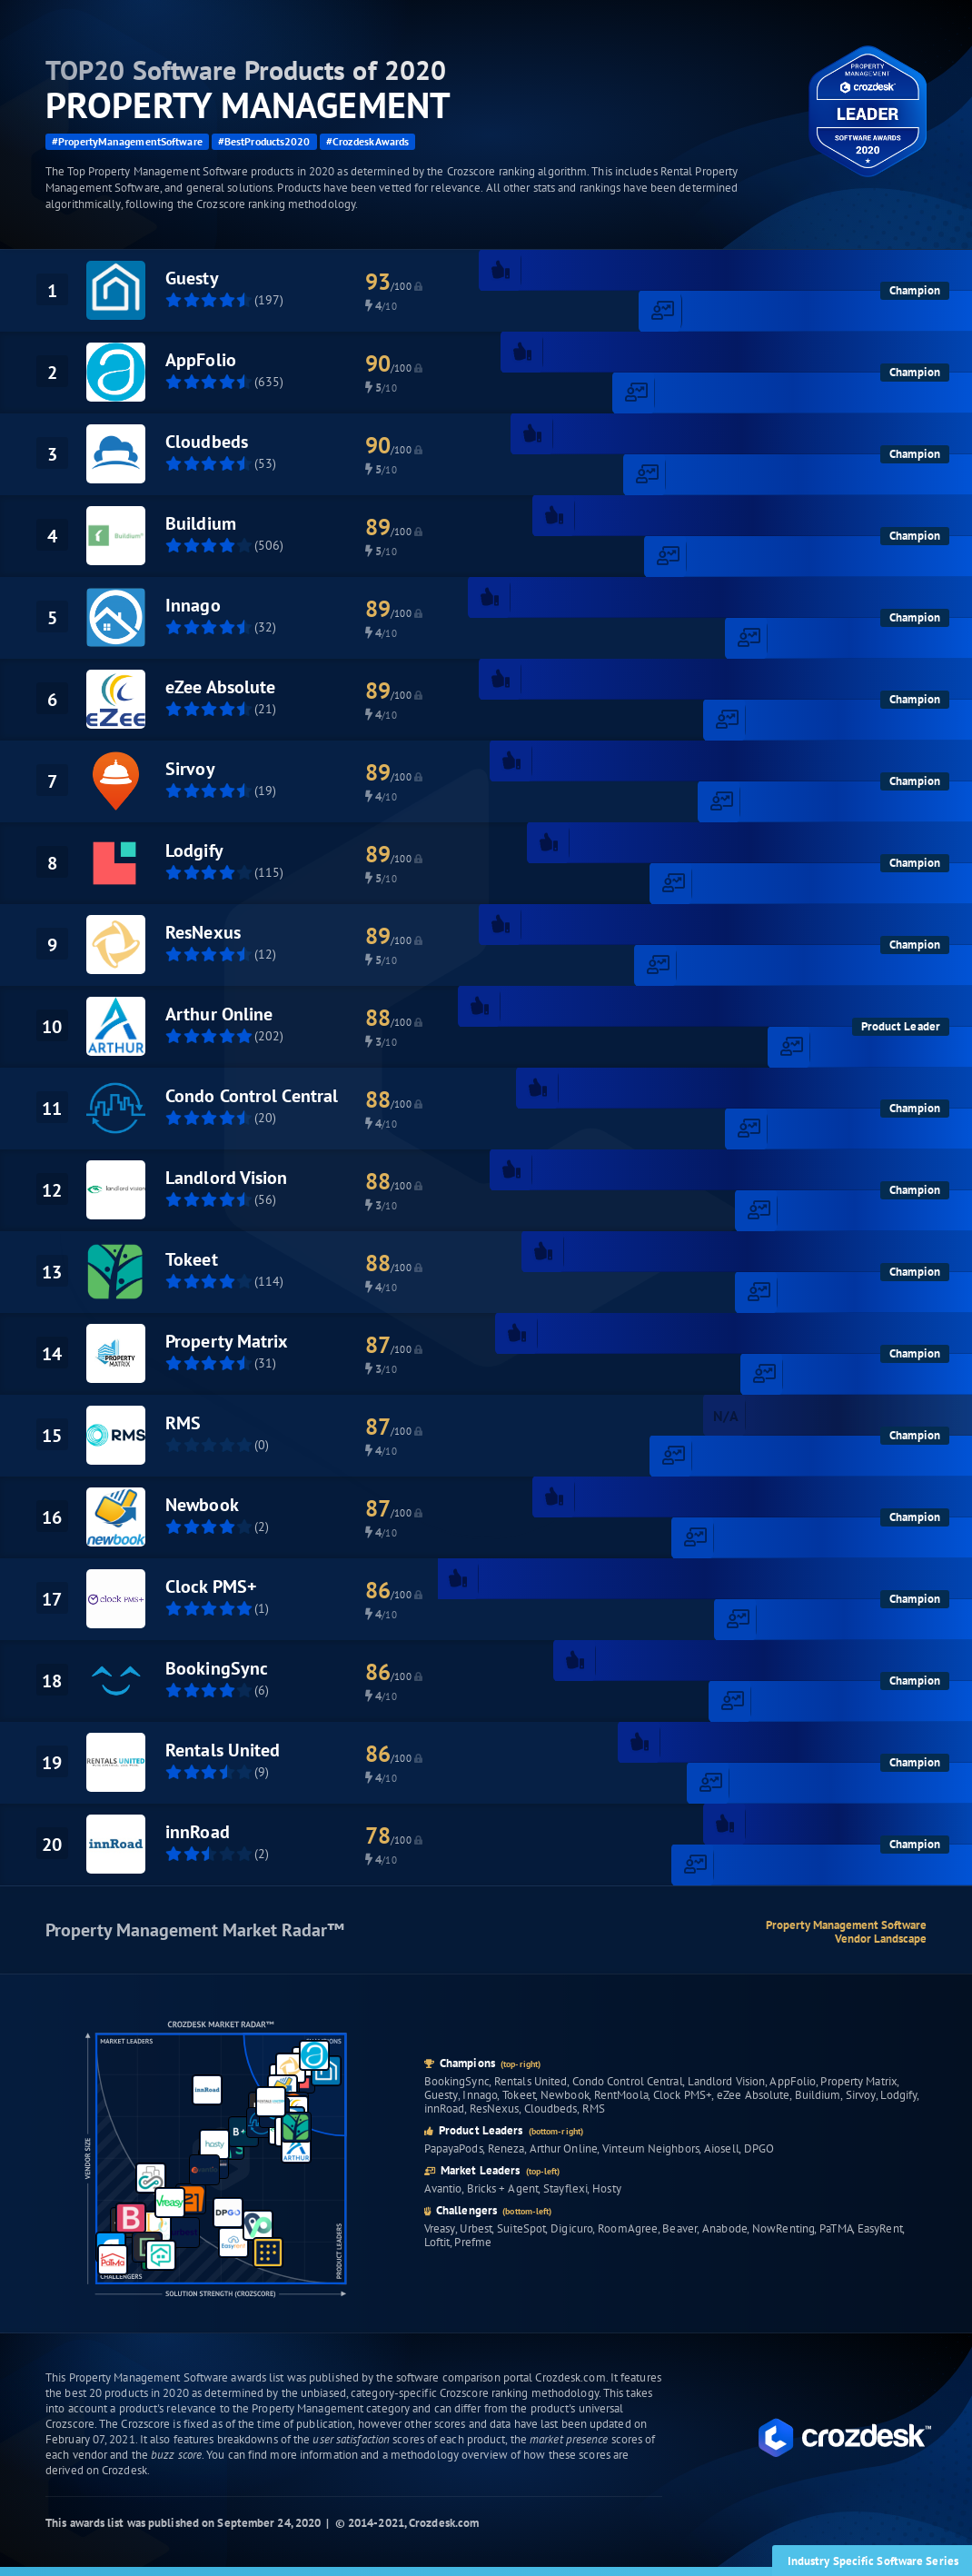 Top 20 Property Management Software of 2020 Infographic